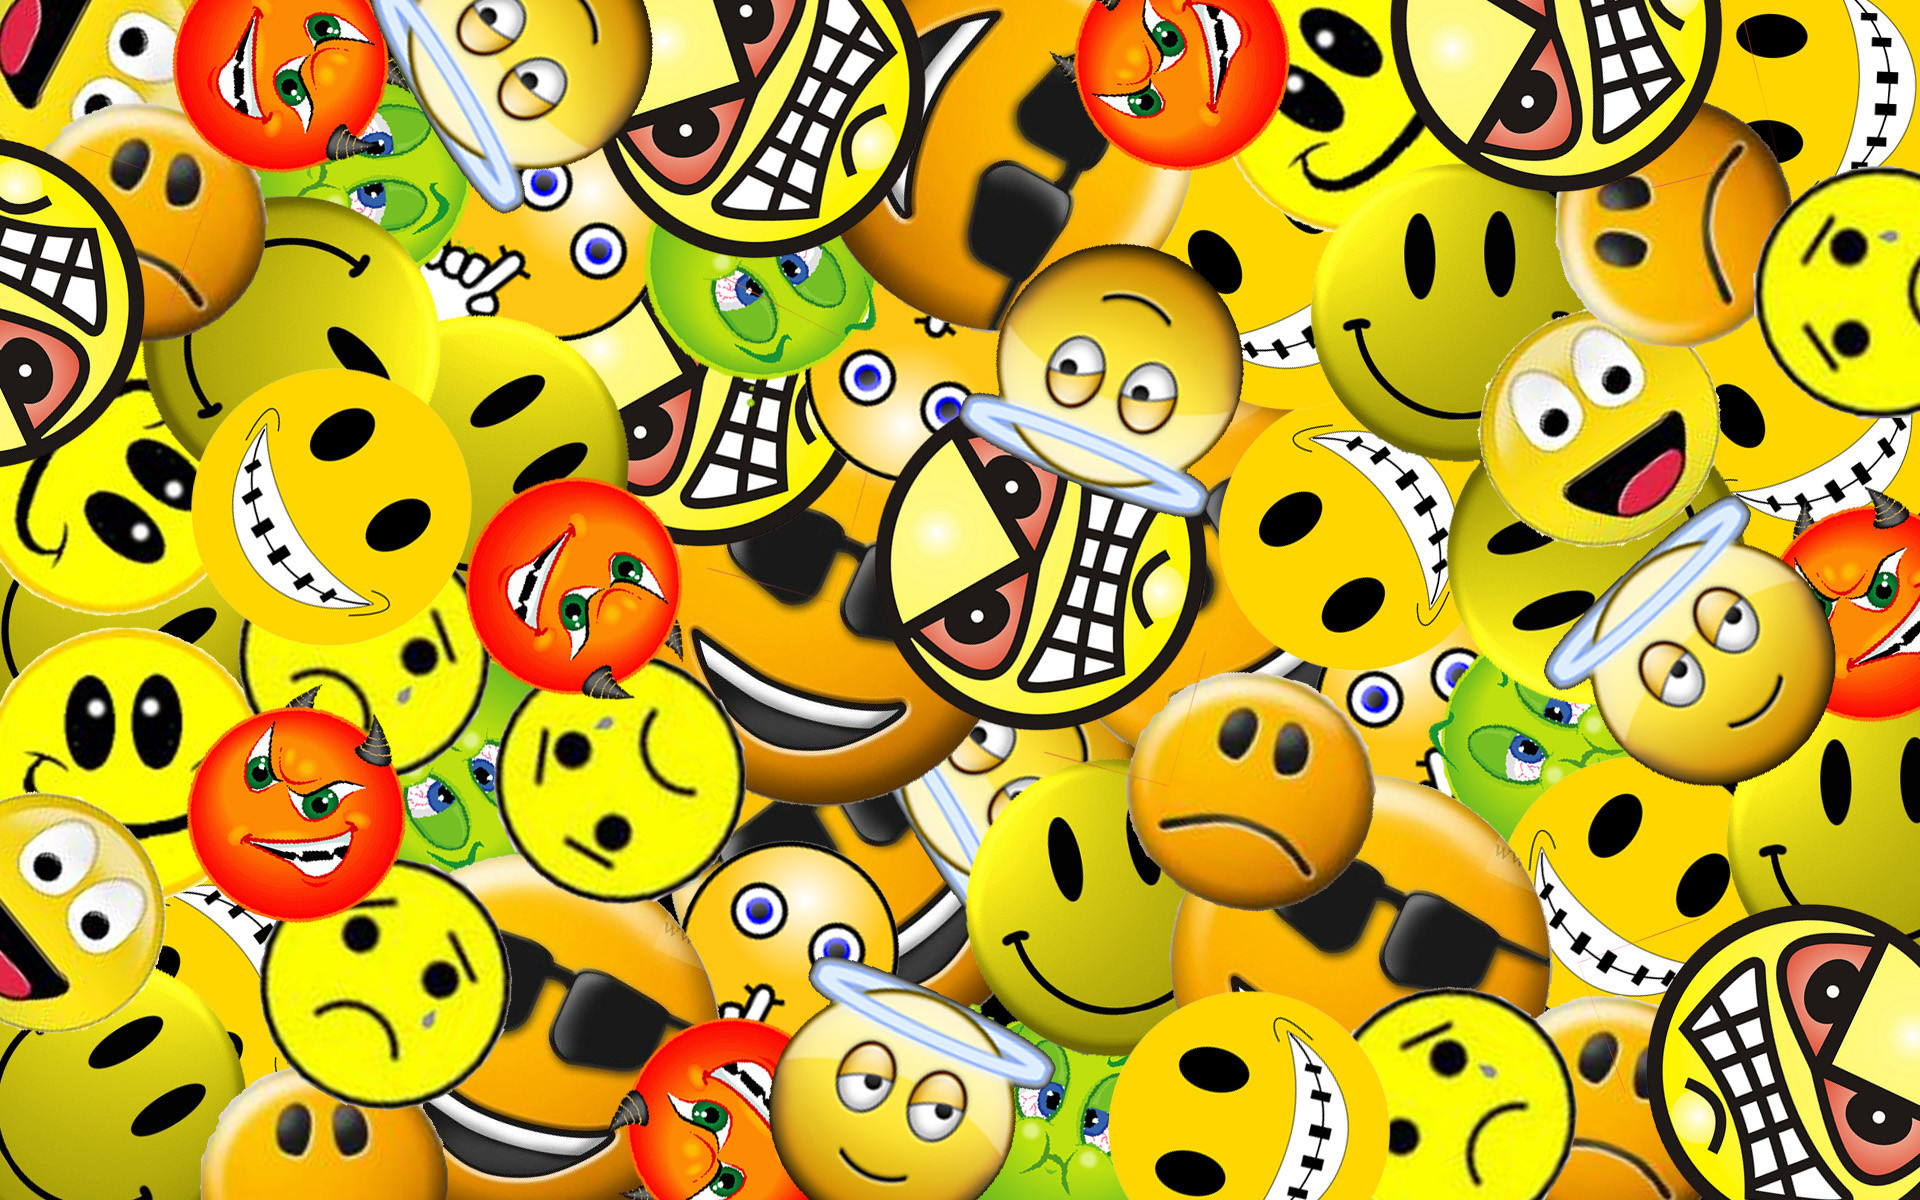 Watchmen Smiley HD Wallpaper | HD Wallpapers Download |Funny Smiley Faces Wallpaper